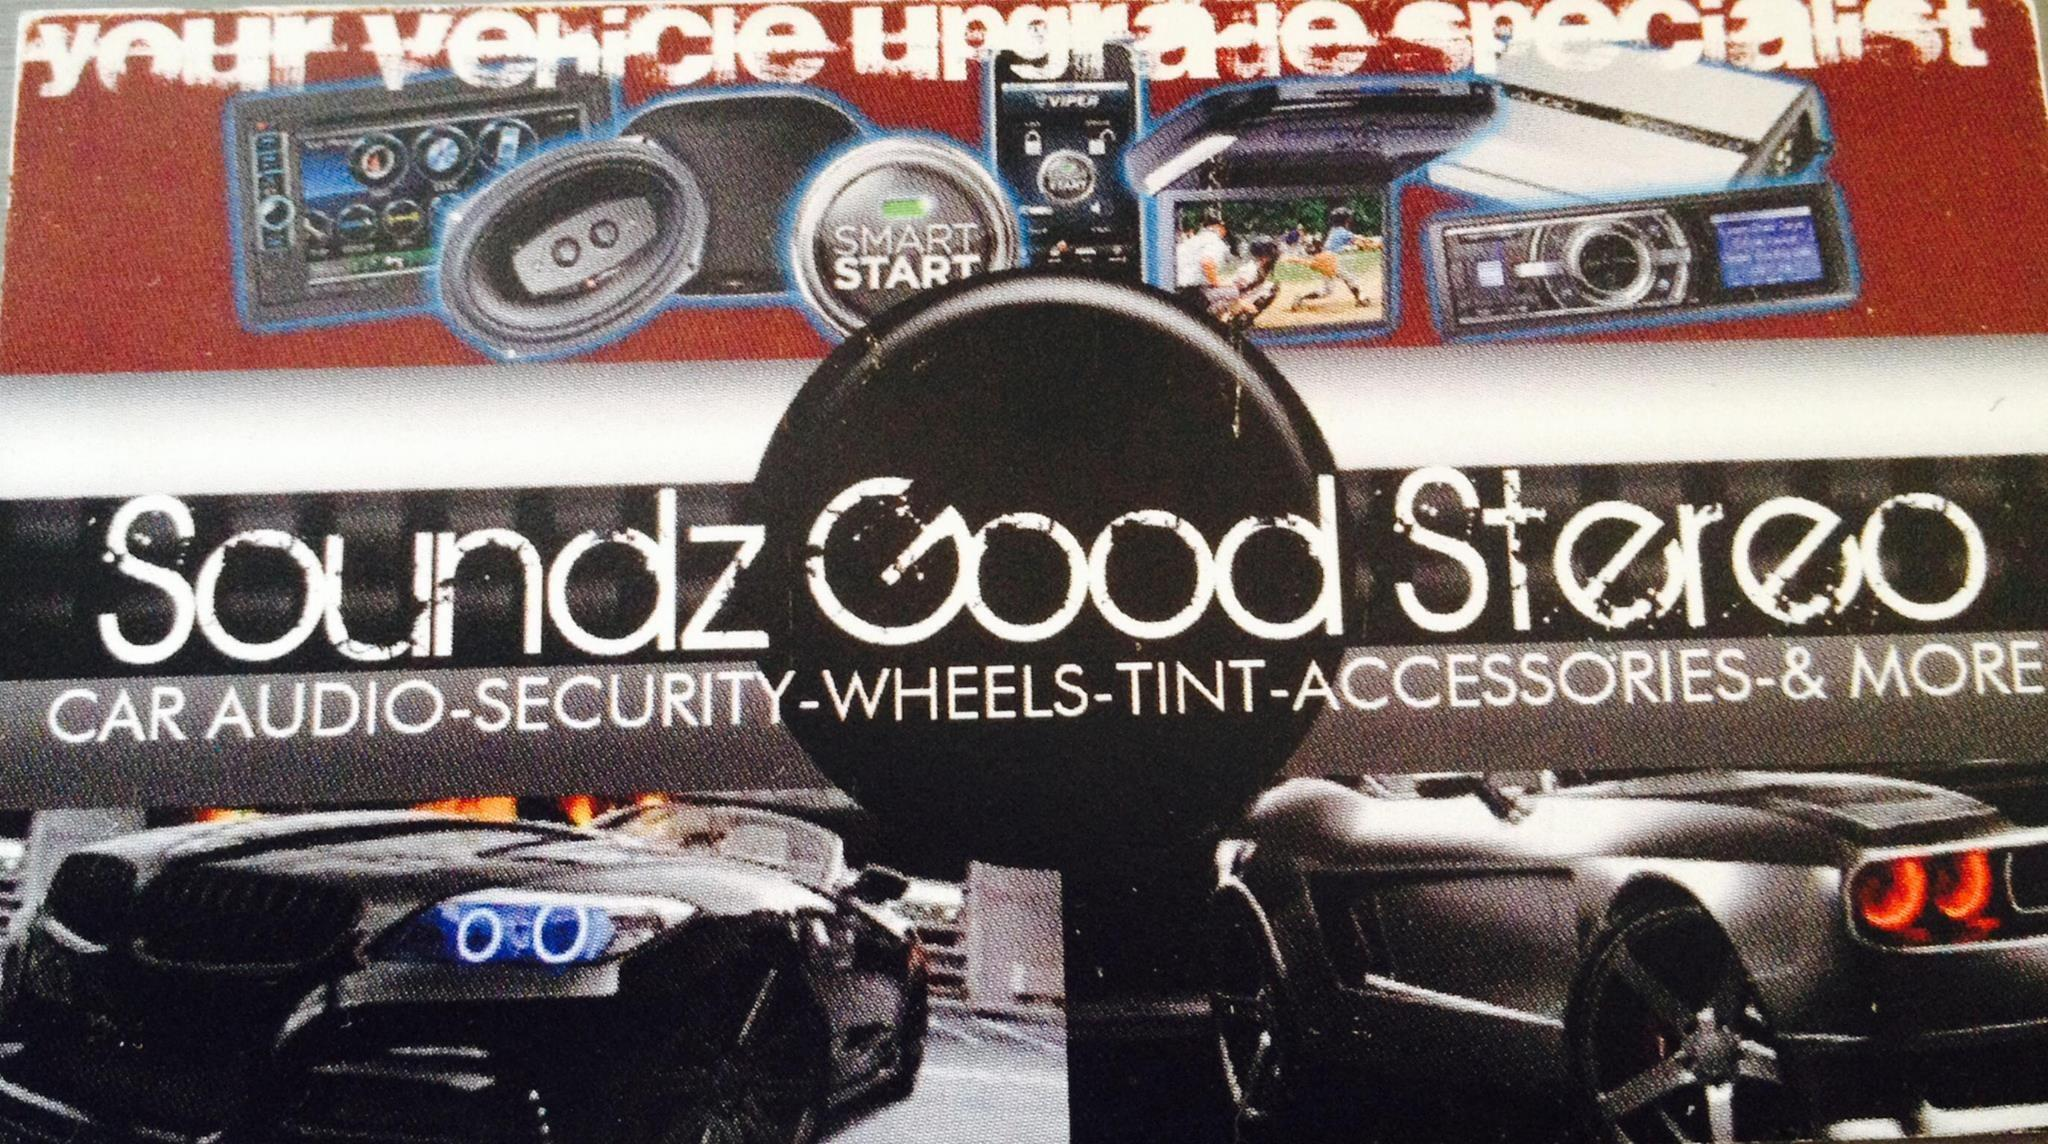 Soundz Good Stereo Coupons Near Me In Oxnard 8coupons